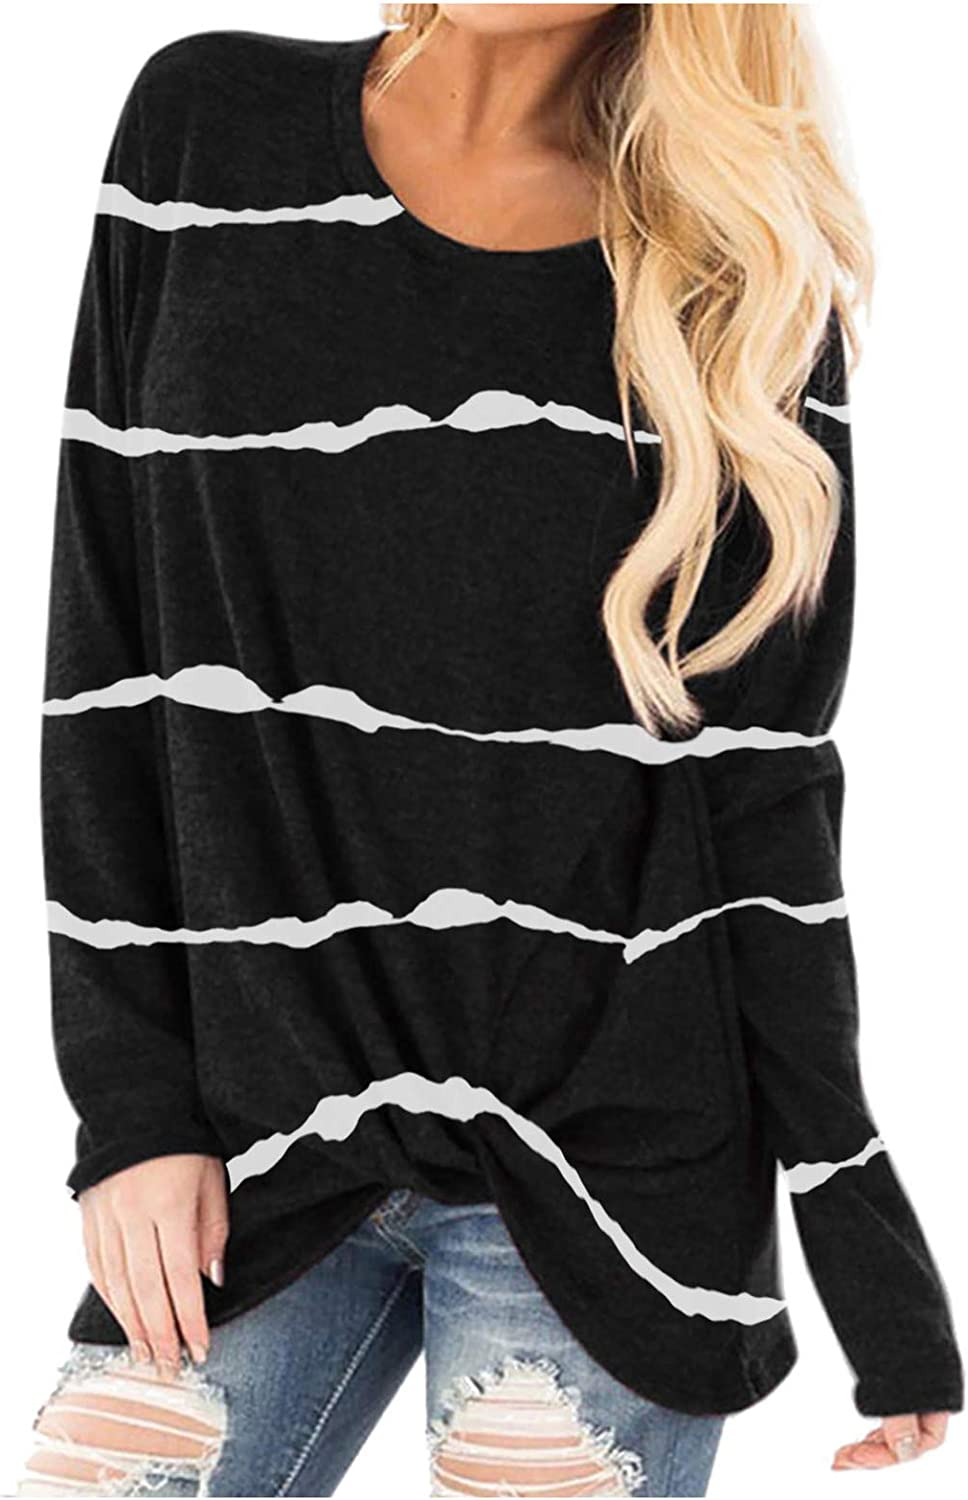 Casual Long Sleeve Crewneck Tunic Tops for Women Solid Striped Loose Twist Knotted T-Shirt Blouse Fit Autumn Sweatshirts